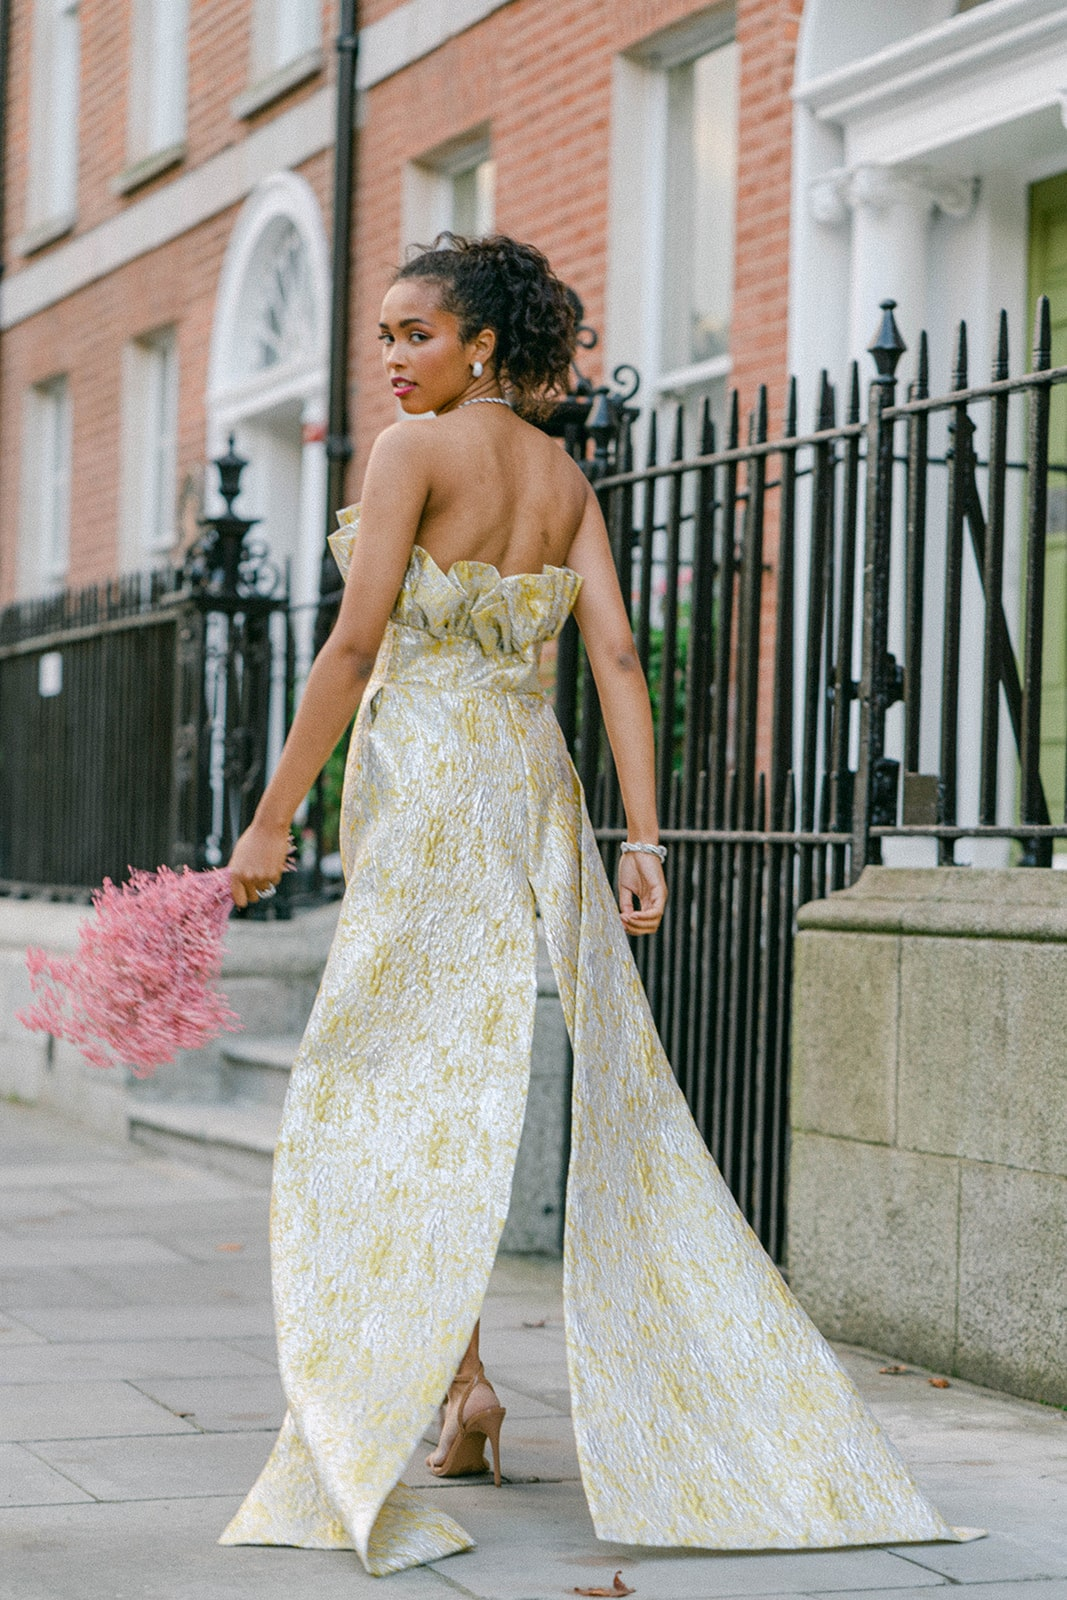 city bride with pink astilbe bouquet